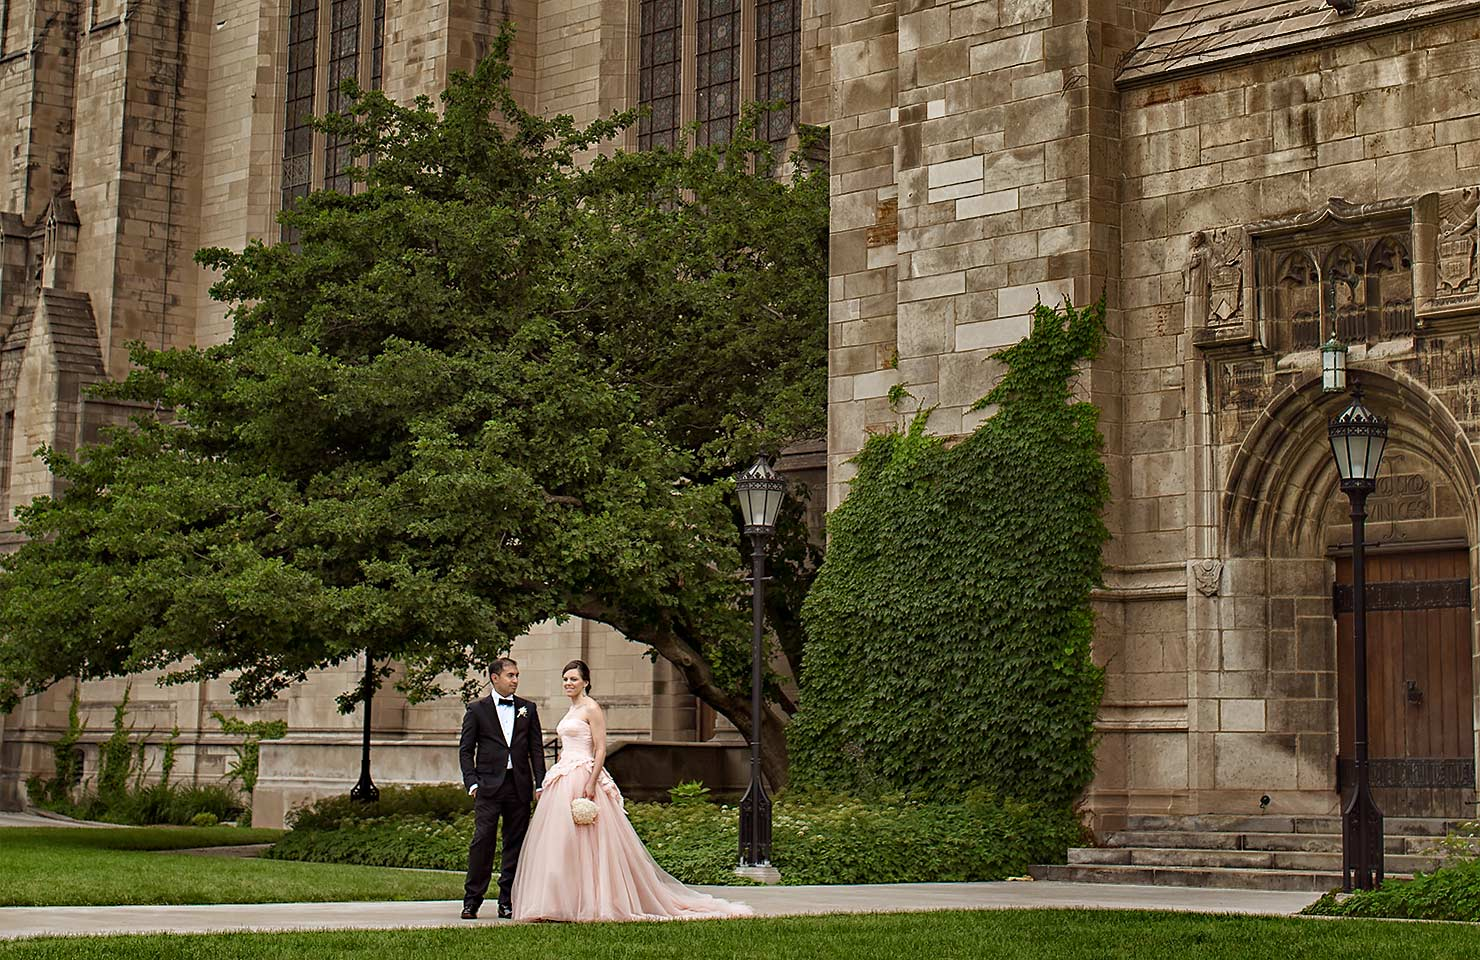 University of Chicago wedding at Smart Museum of Art – Lynn+Satya